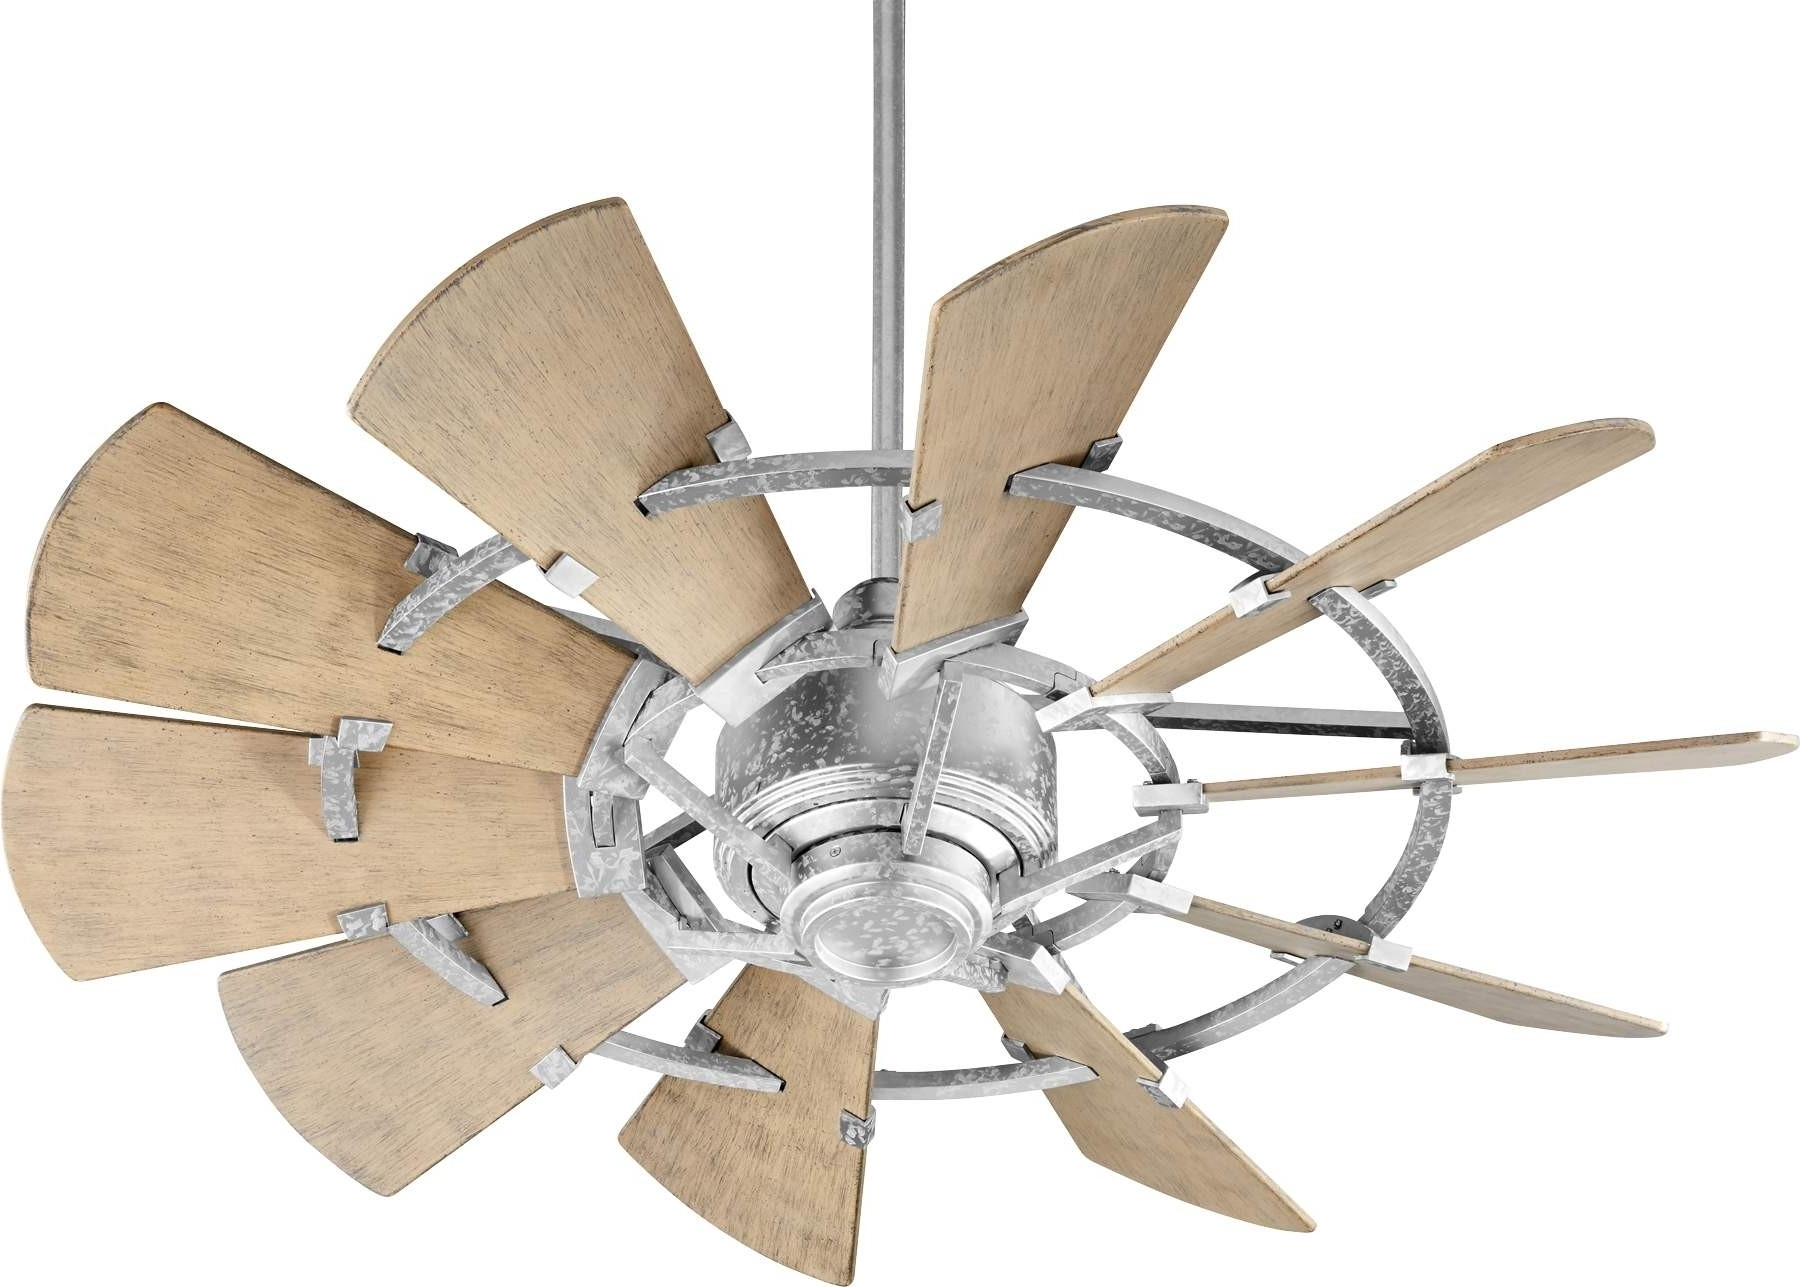 Latest Outdoor Windmill Ceiling Fans With Light Throughout Quorum Windmill Ceiling Fan Model 194410 9 In Galvanized (View 10 of 20)